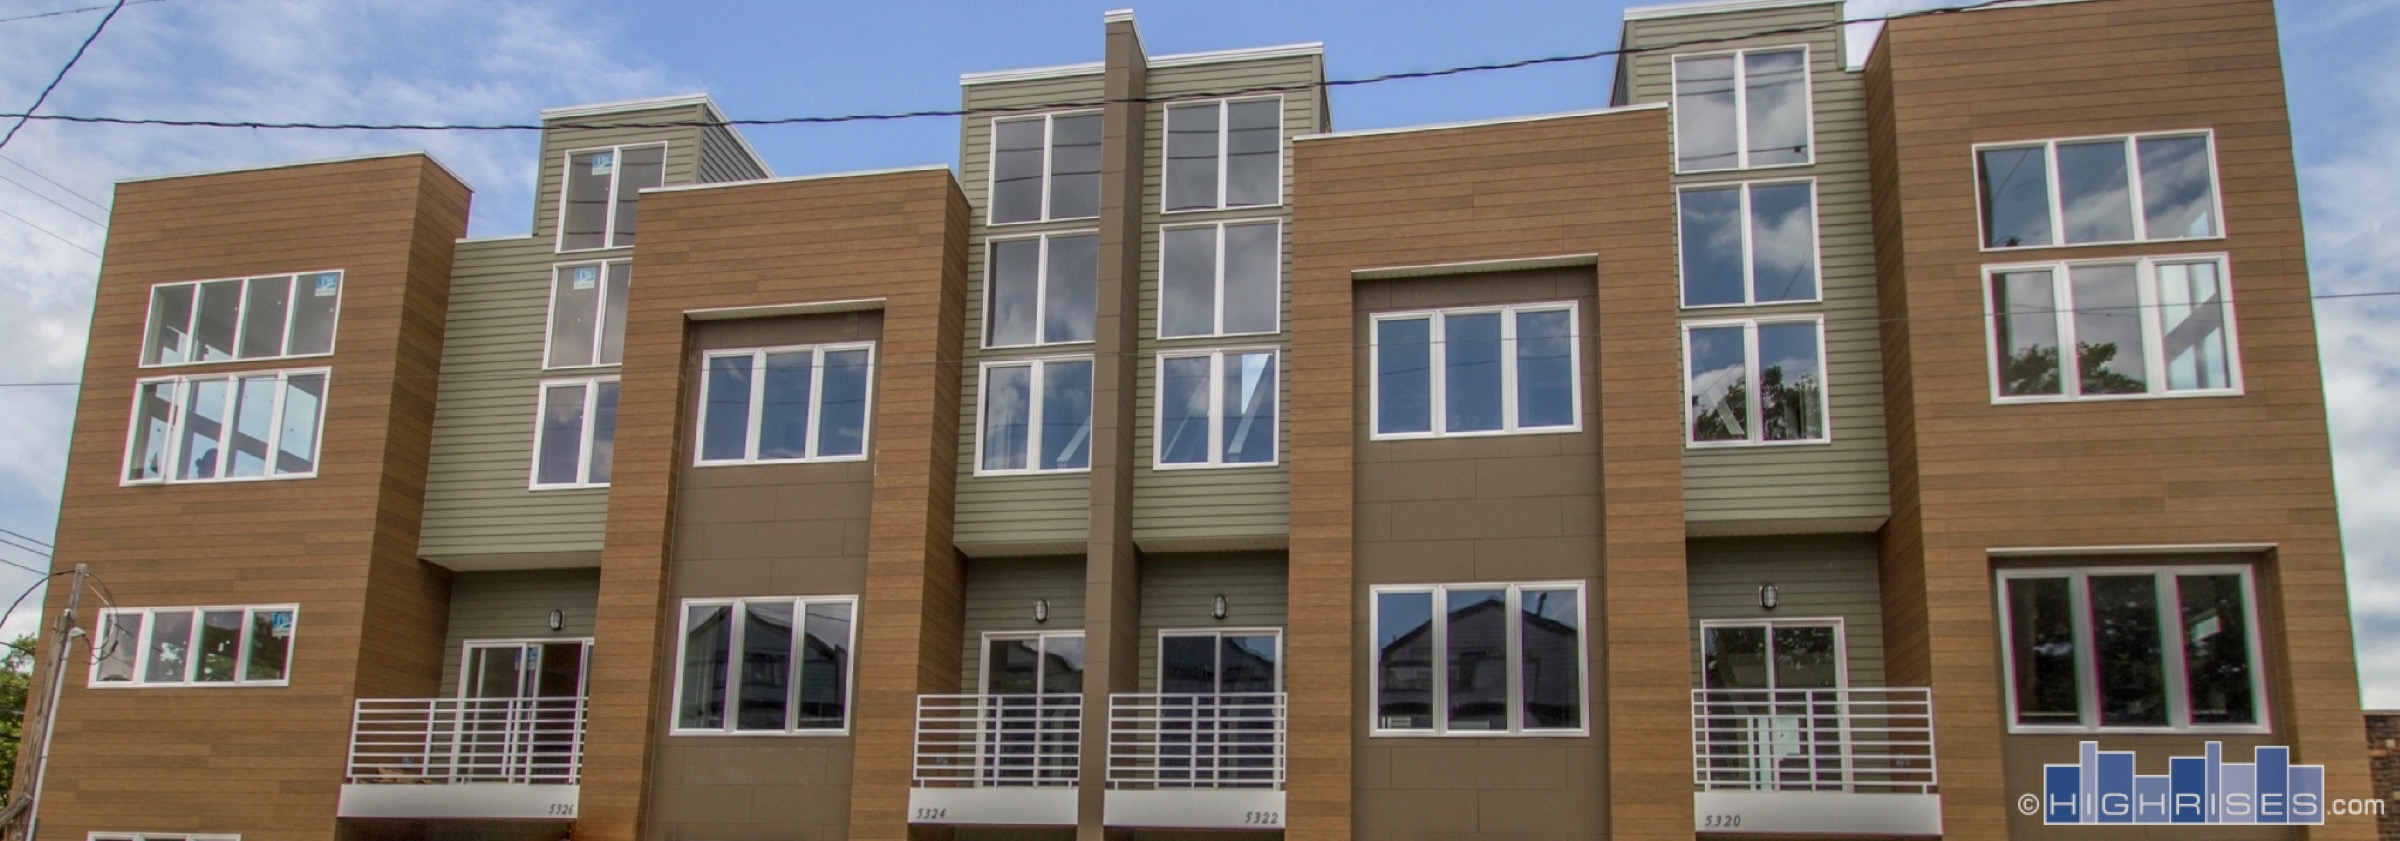 Harborview Townhomes